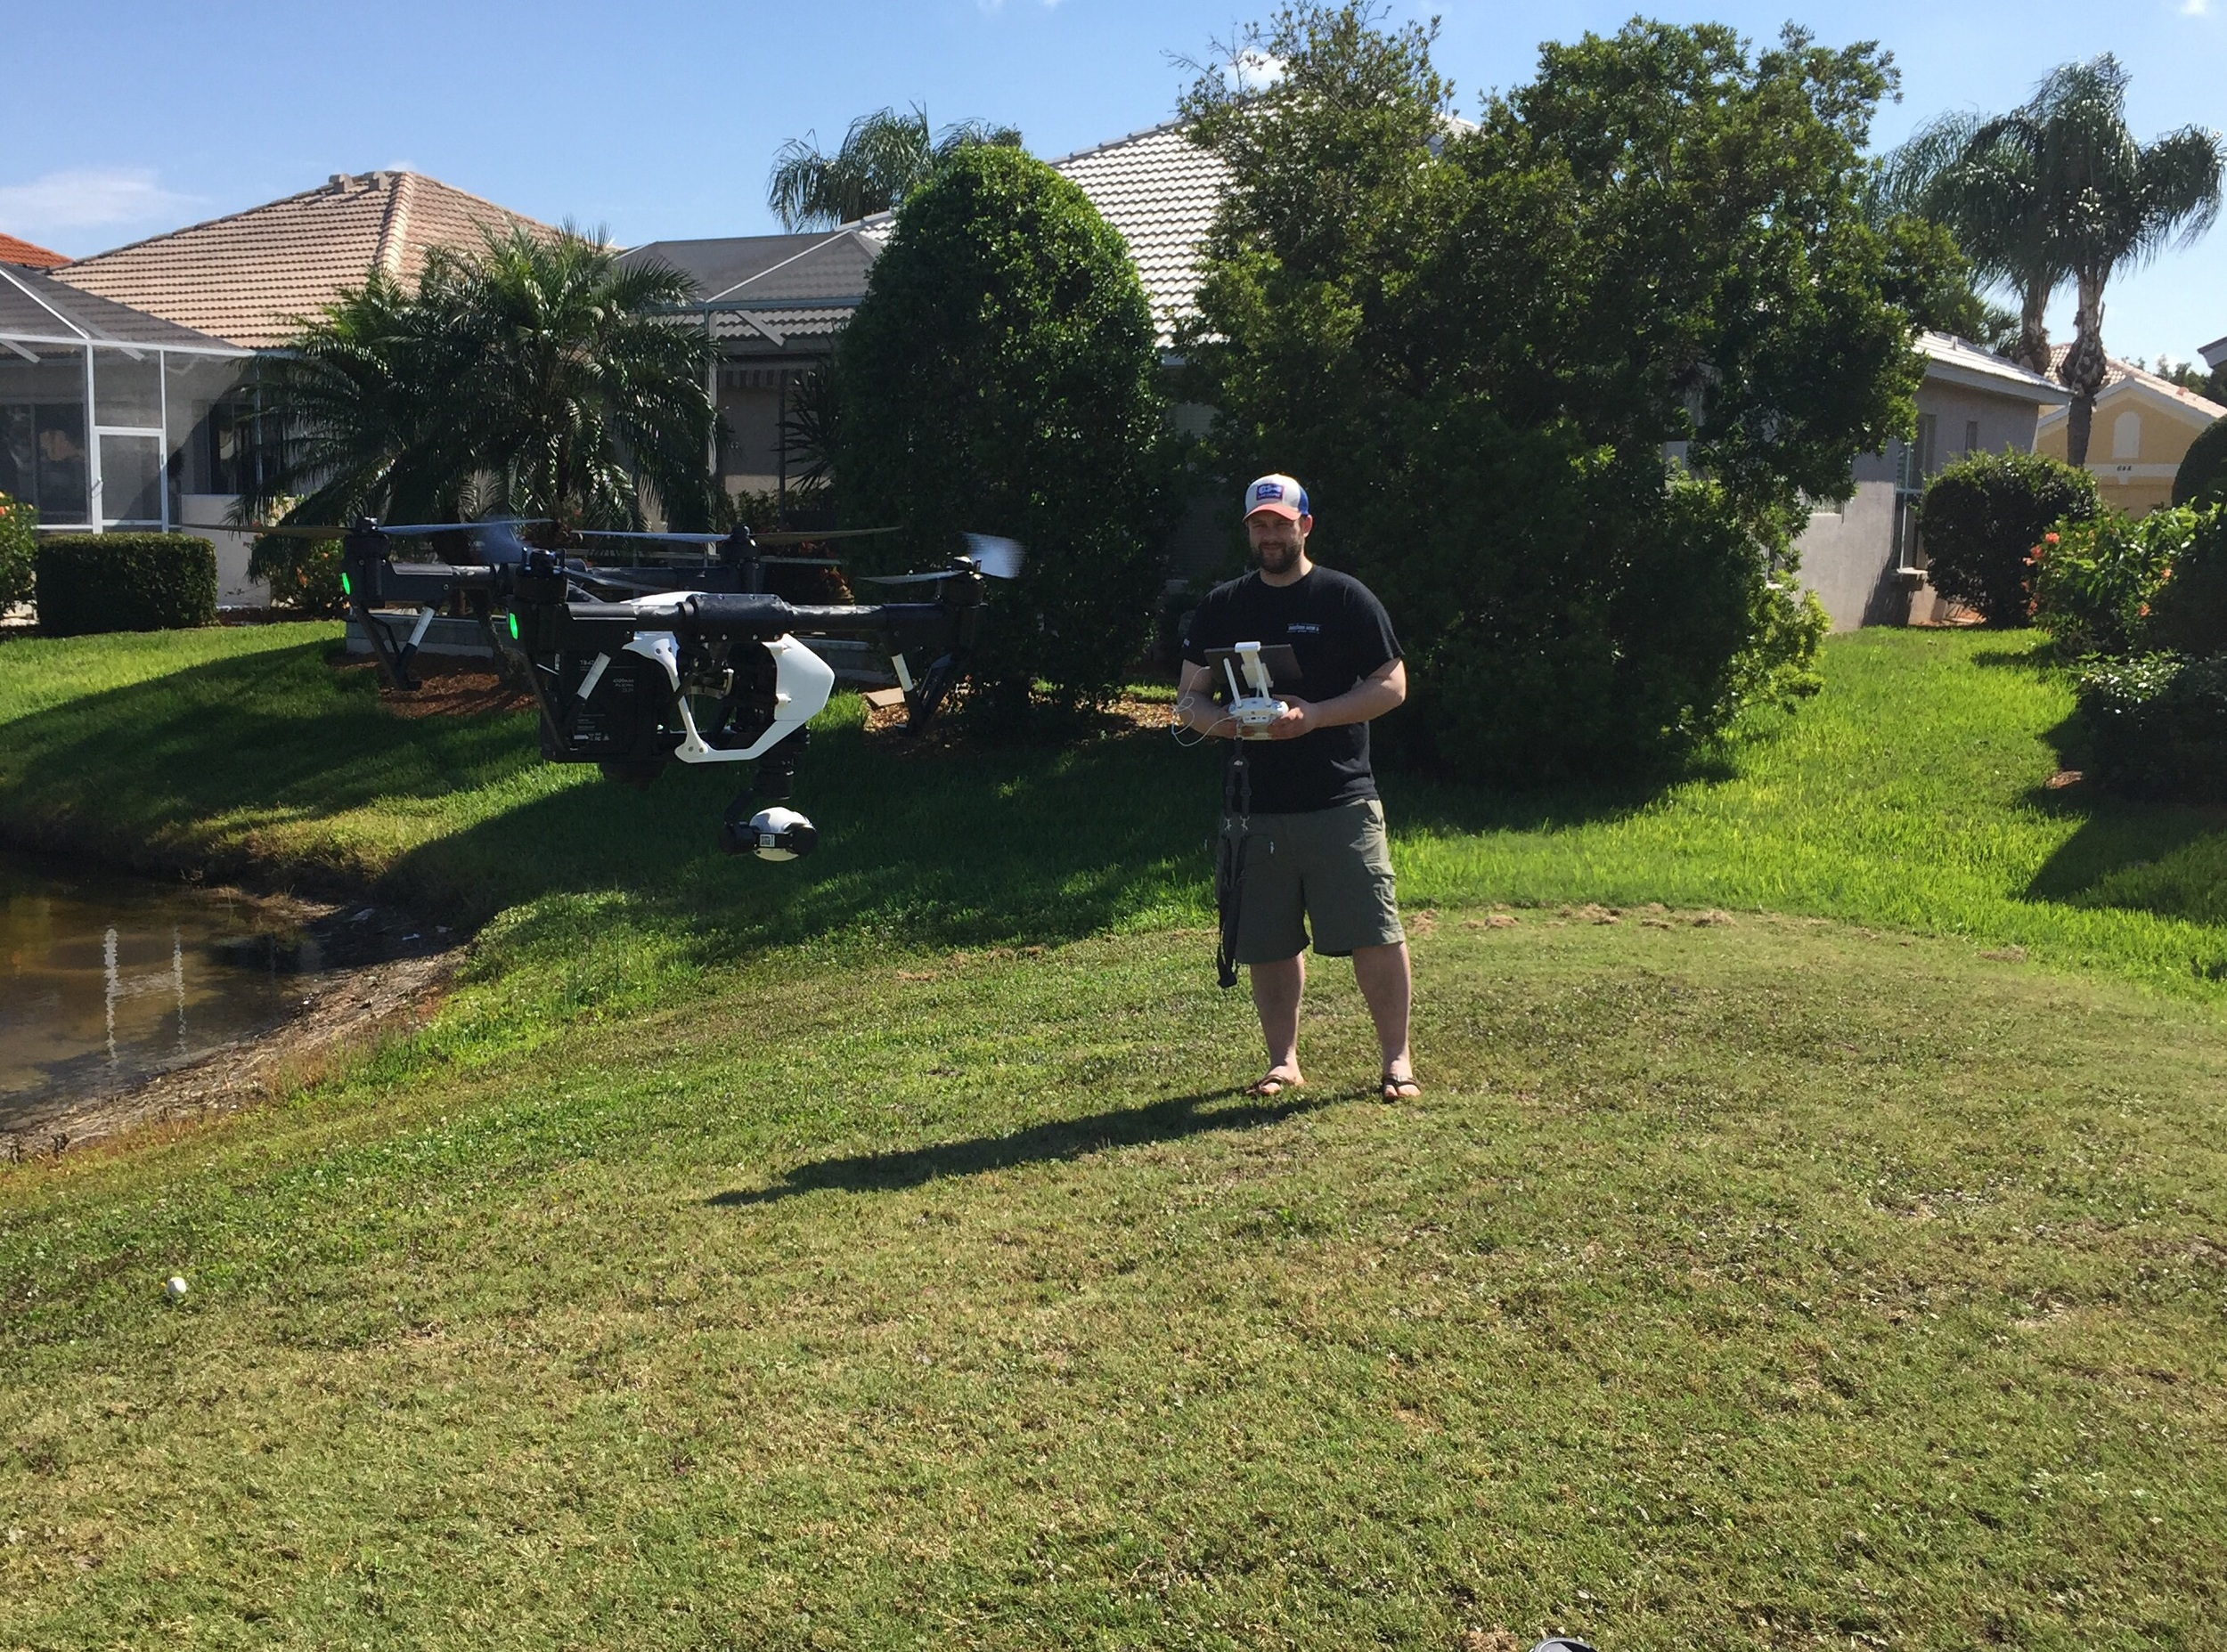 Testing the drone at a nearby golf coarse...  Only crashed it once